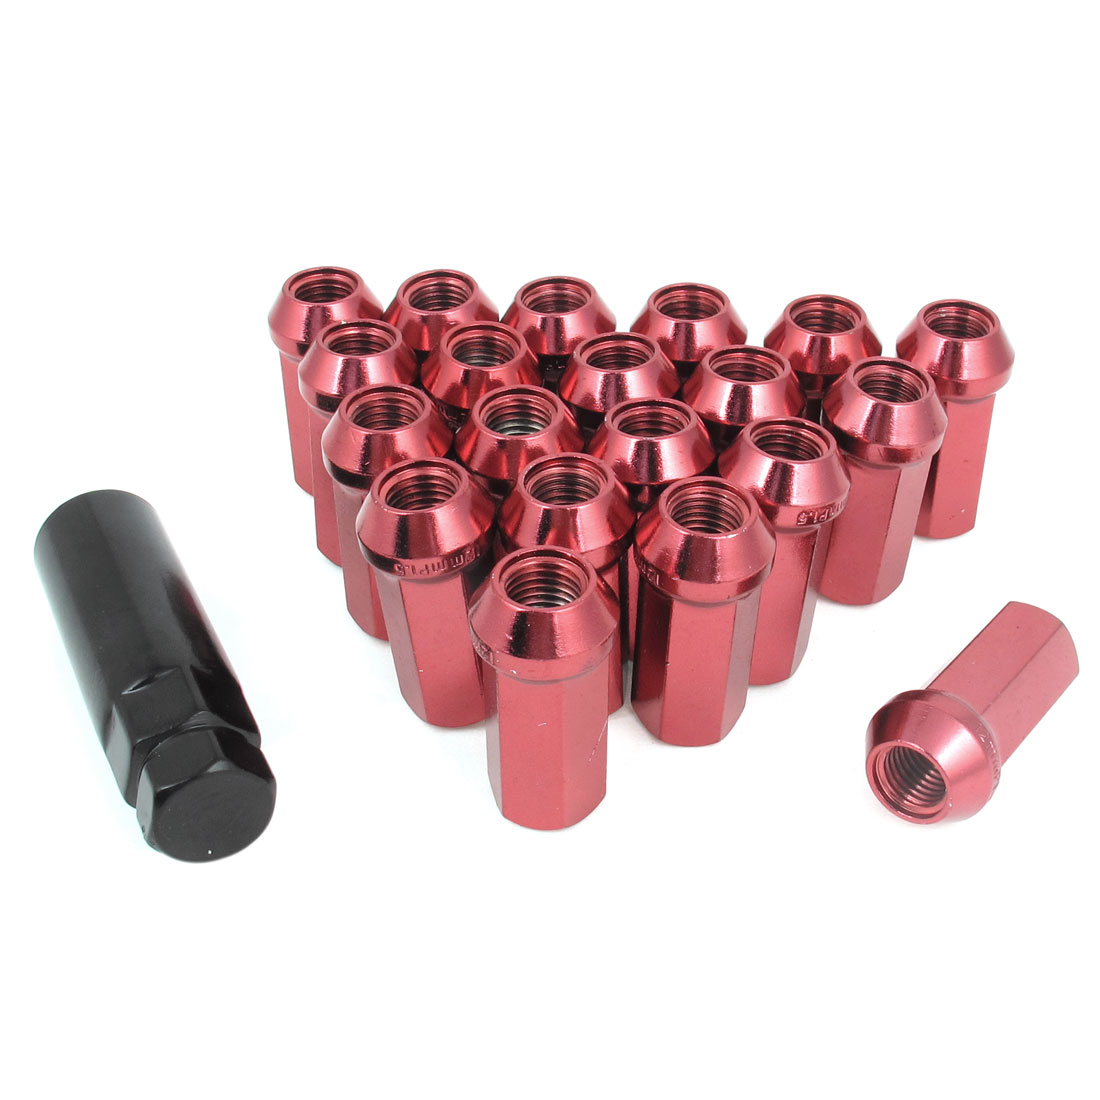 20 Pcs M12 x 1.5 Thread Locking Hex Open End Lugnut Lug Nuts Red for Car